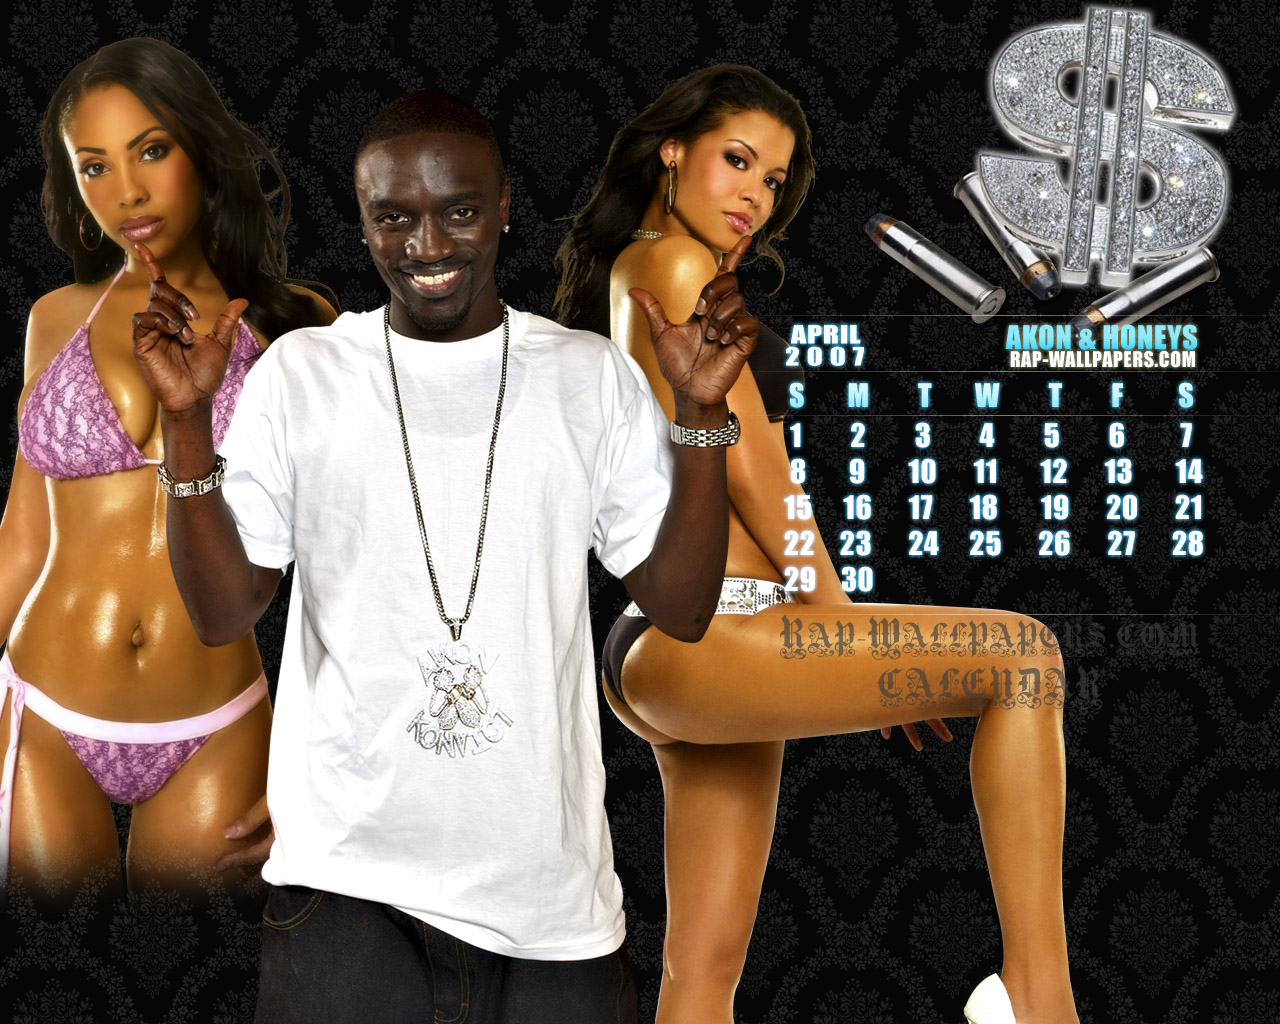 click on the wallpaper and choose 'Save Picture As' April 07 - Akon